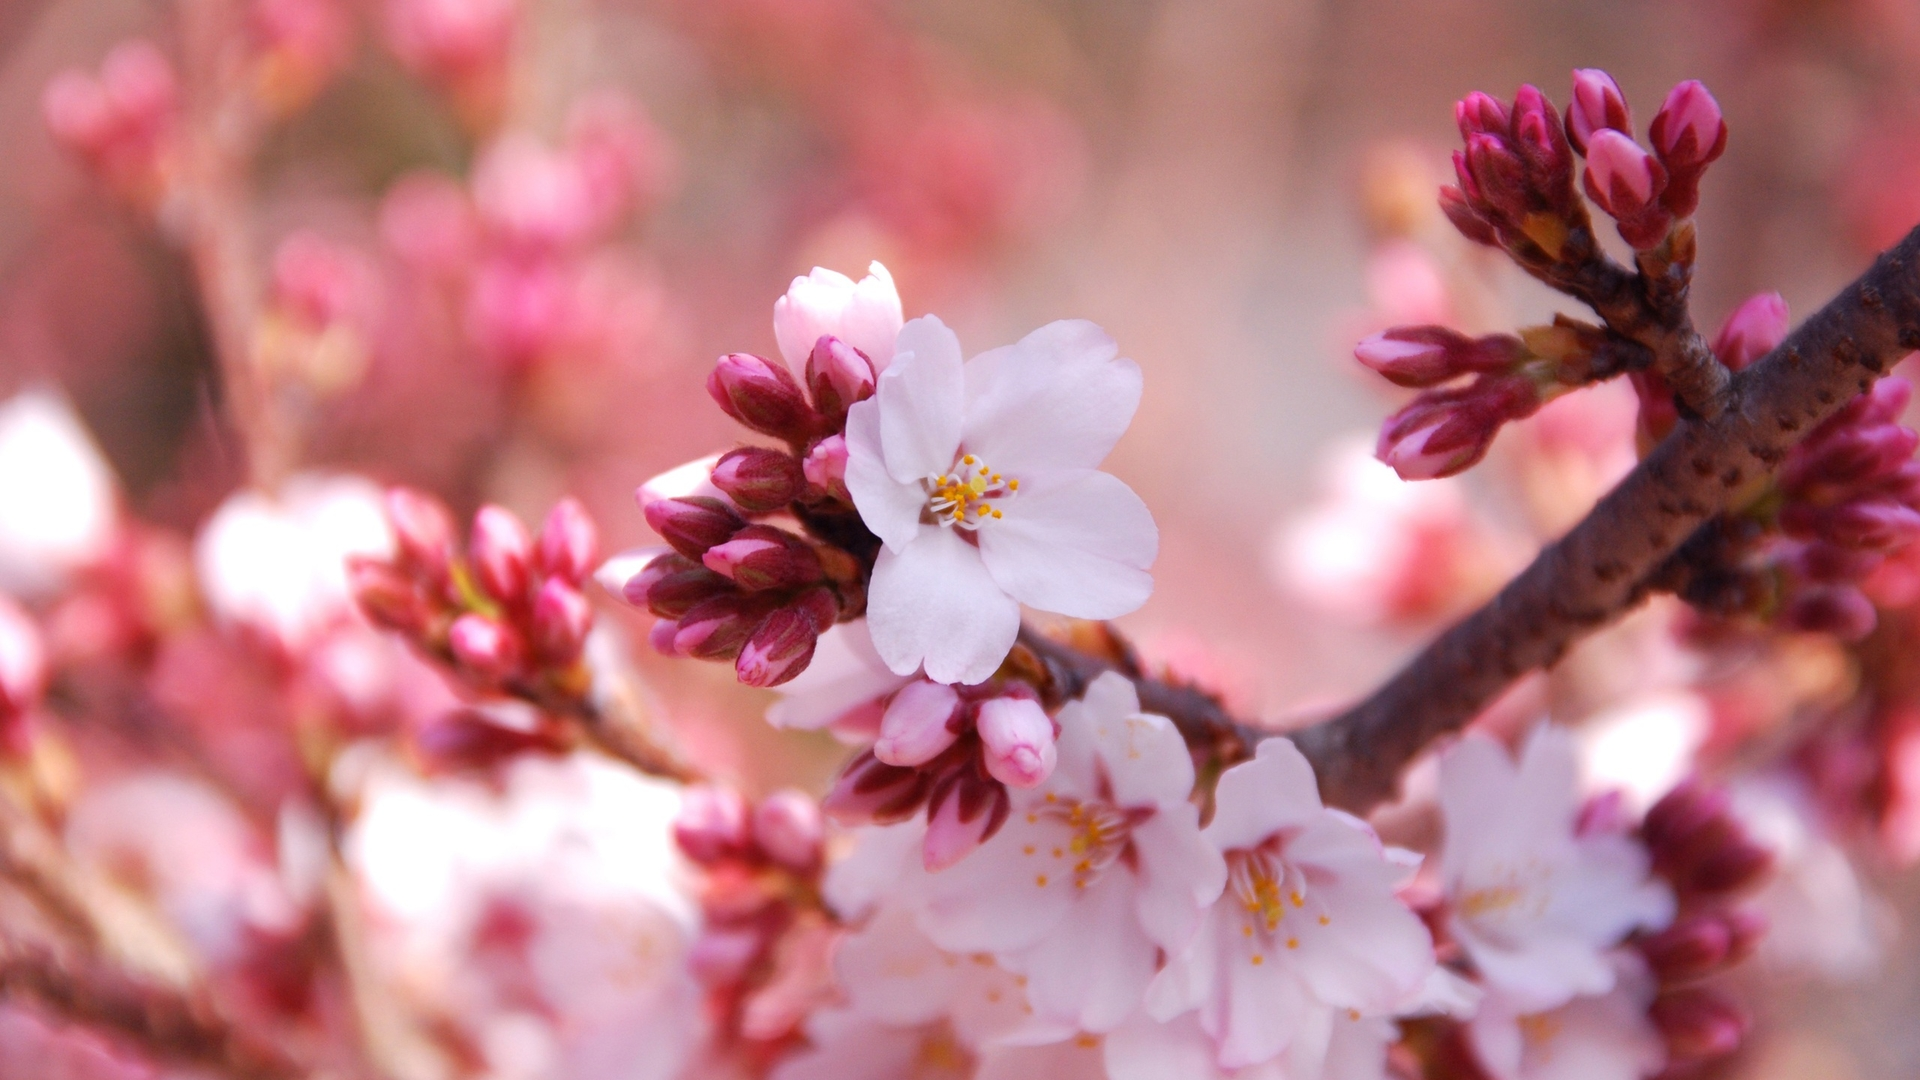 1080P-Beautiful-Nature-With-Pink-Cherry-Blossoms-wallpaper-wp380577